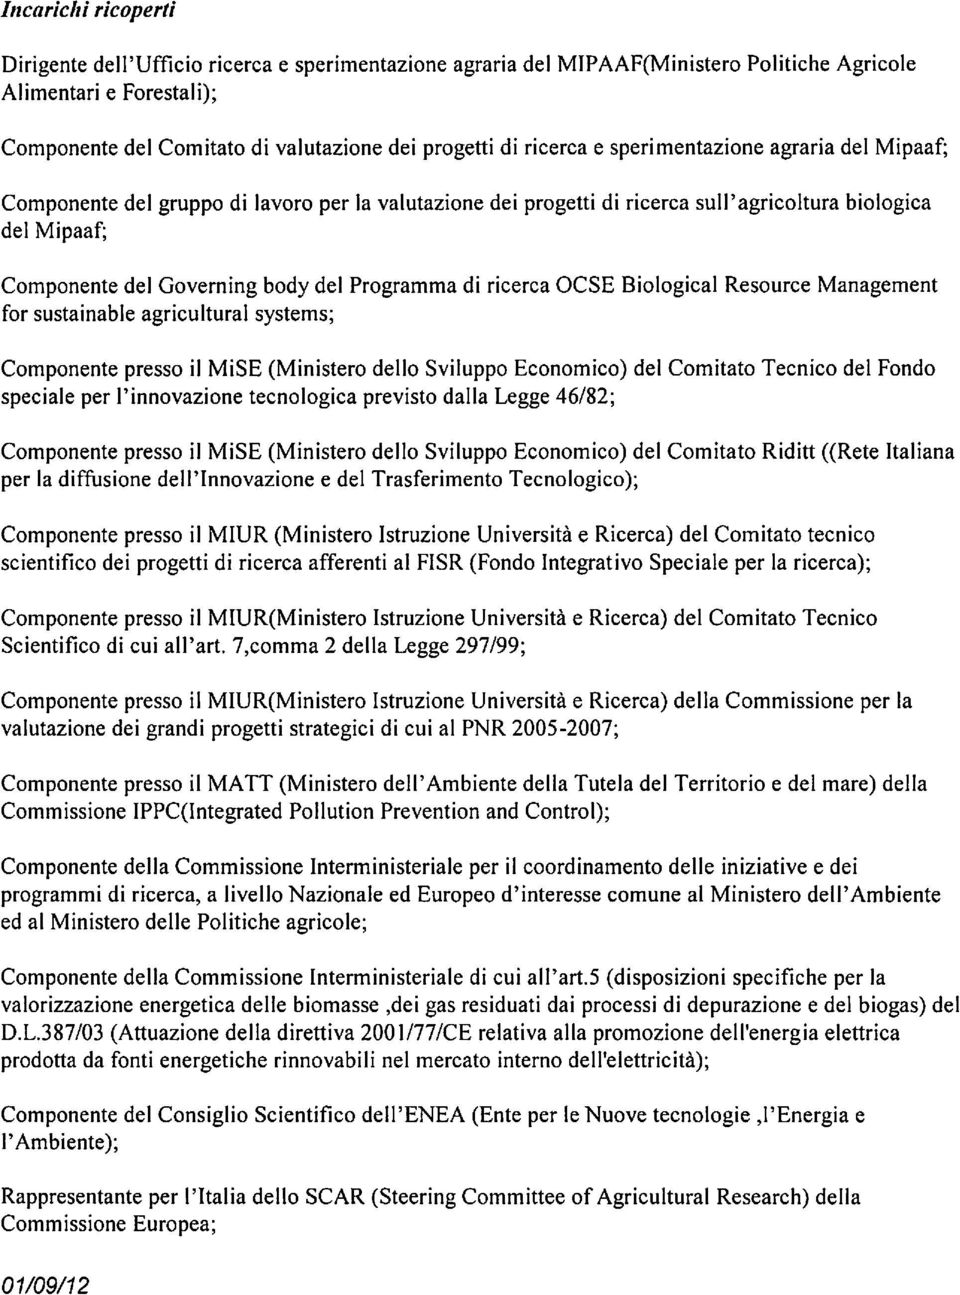 Programma di ricerca OCSE Biological Resource Management for sustainable agricultural systems; Componente presso il MiSE (Ministero dello Sviluppo Economico) del Comitato Tecnico del Fondo speciale